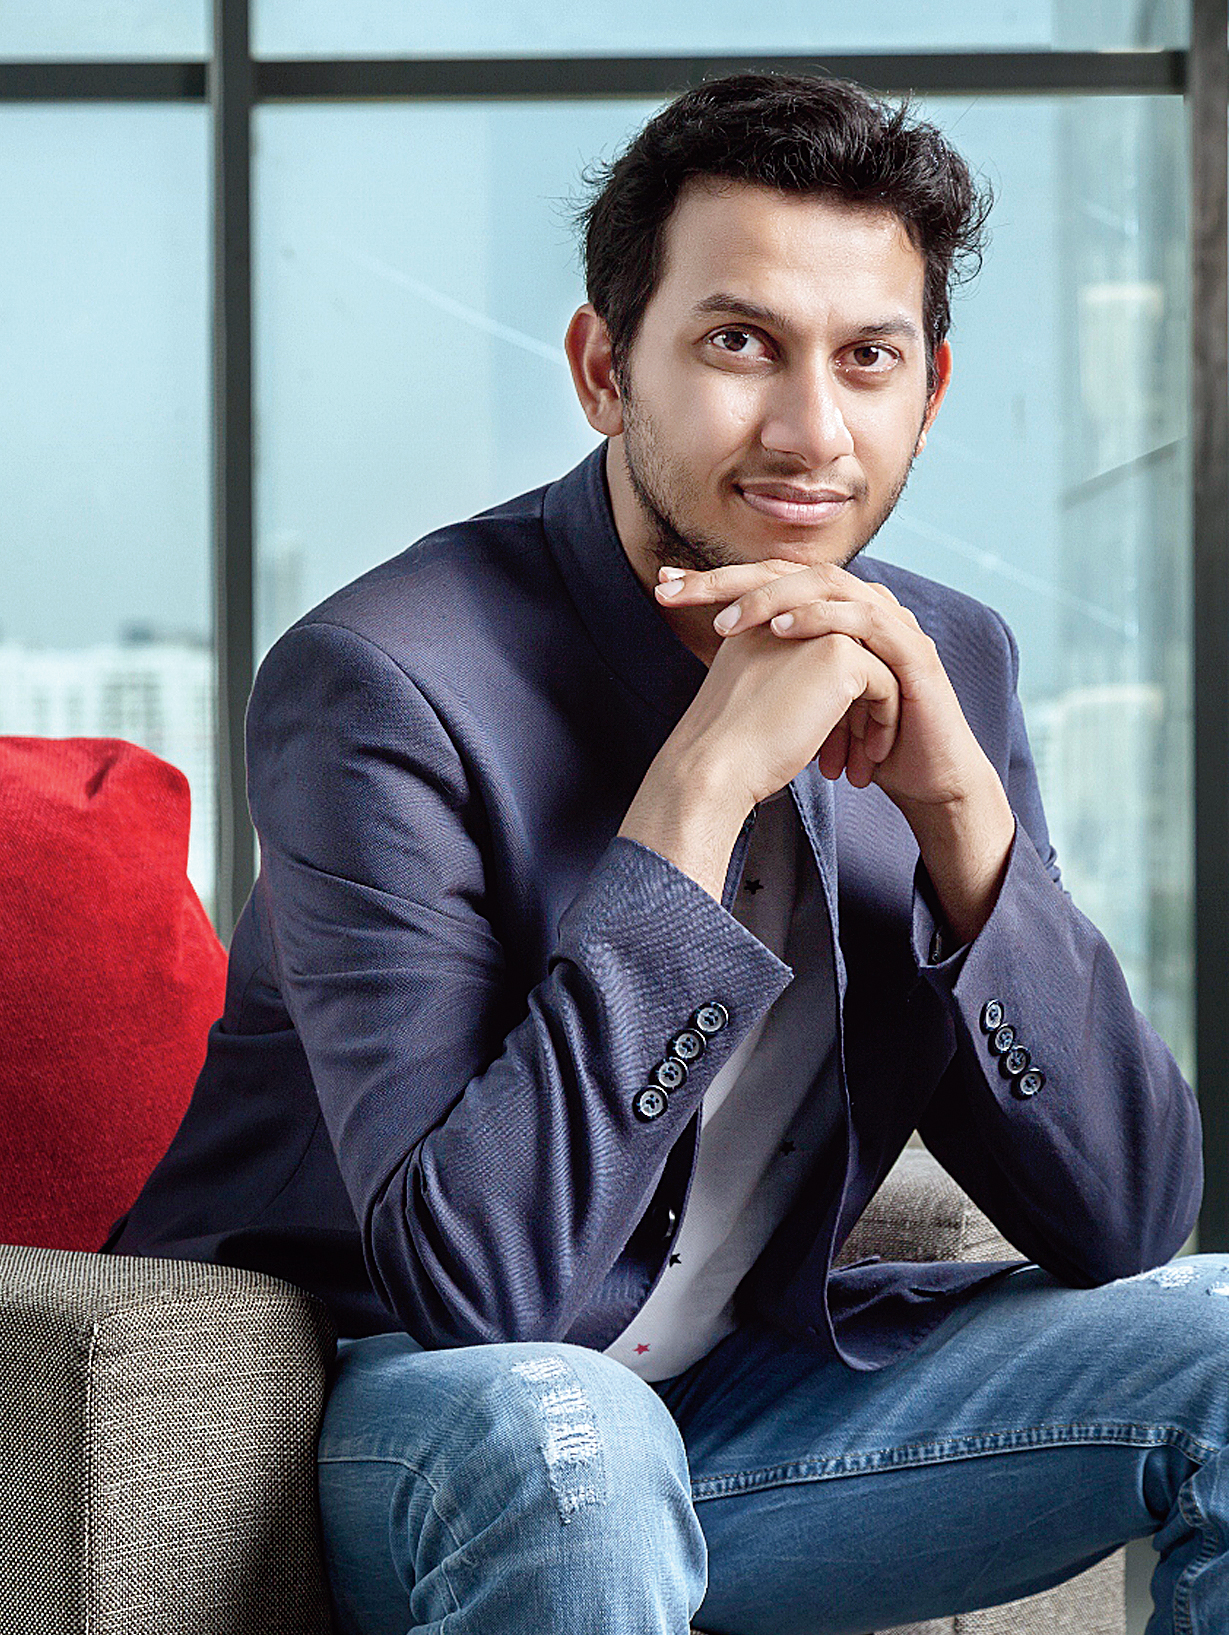 The founder and group CEO of OYO Hotels & Homes, Ritesh Agarwal has had a dream run in the last five years, steering his start-up from an affordable hospitality option to a brand that's present in China, the UK, Nepal, Malaysia, the UAE and, most recently, Indonesia